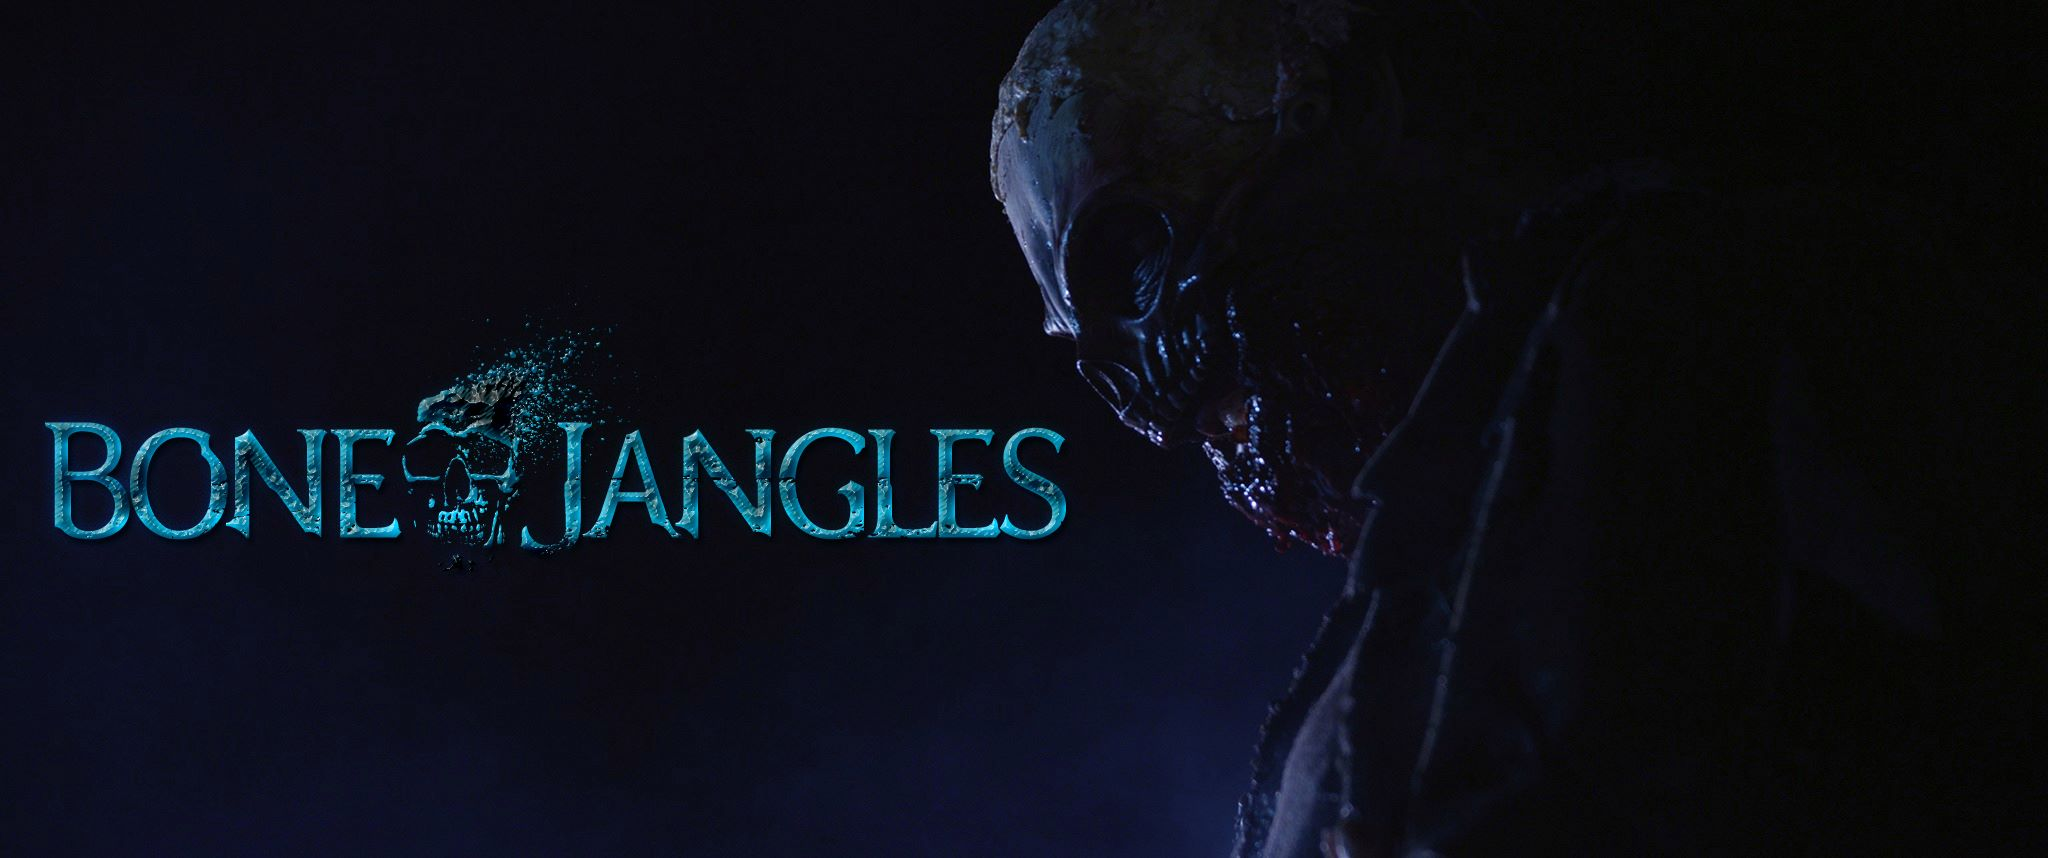 bonjangles 2 - Beware the Rattle of Bones in Bonejangles